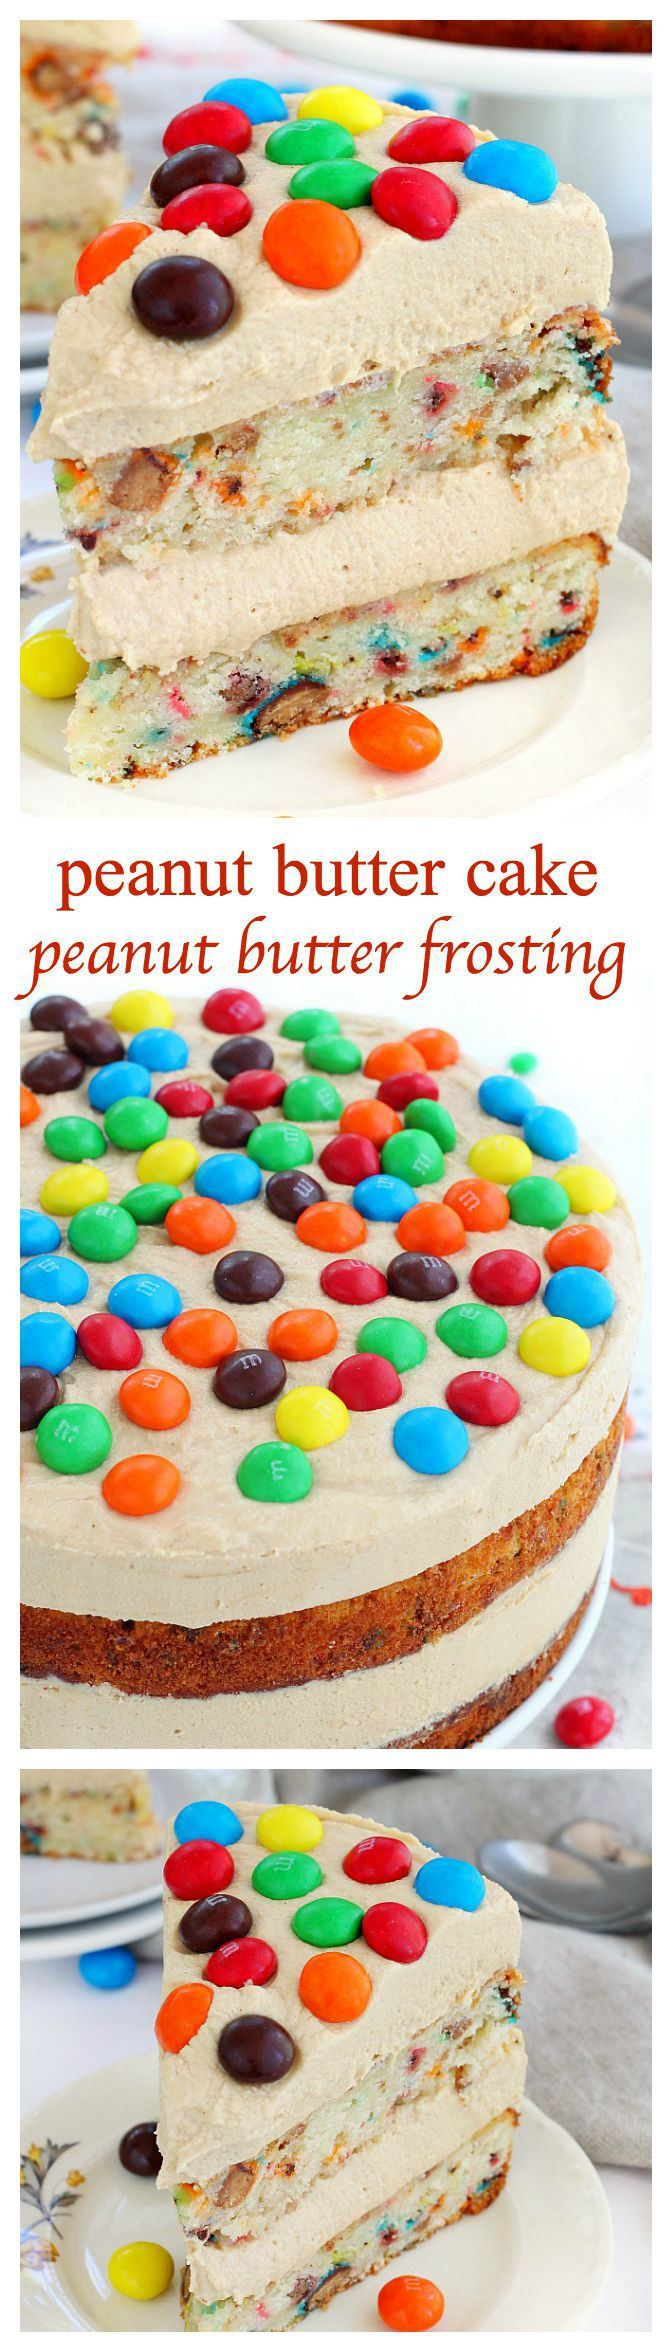 Peanut butter cake loaded with chopped Peanut Butter M&M's and a dreamy peanut butter frosting